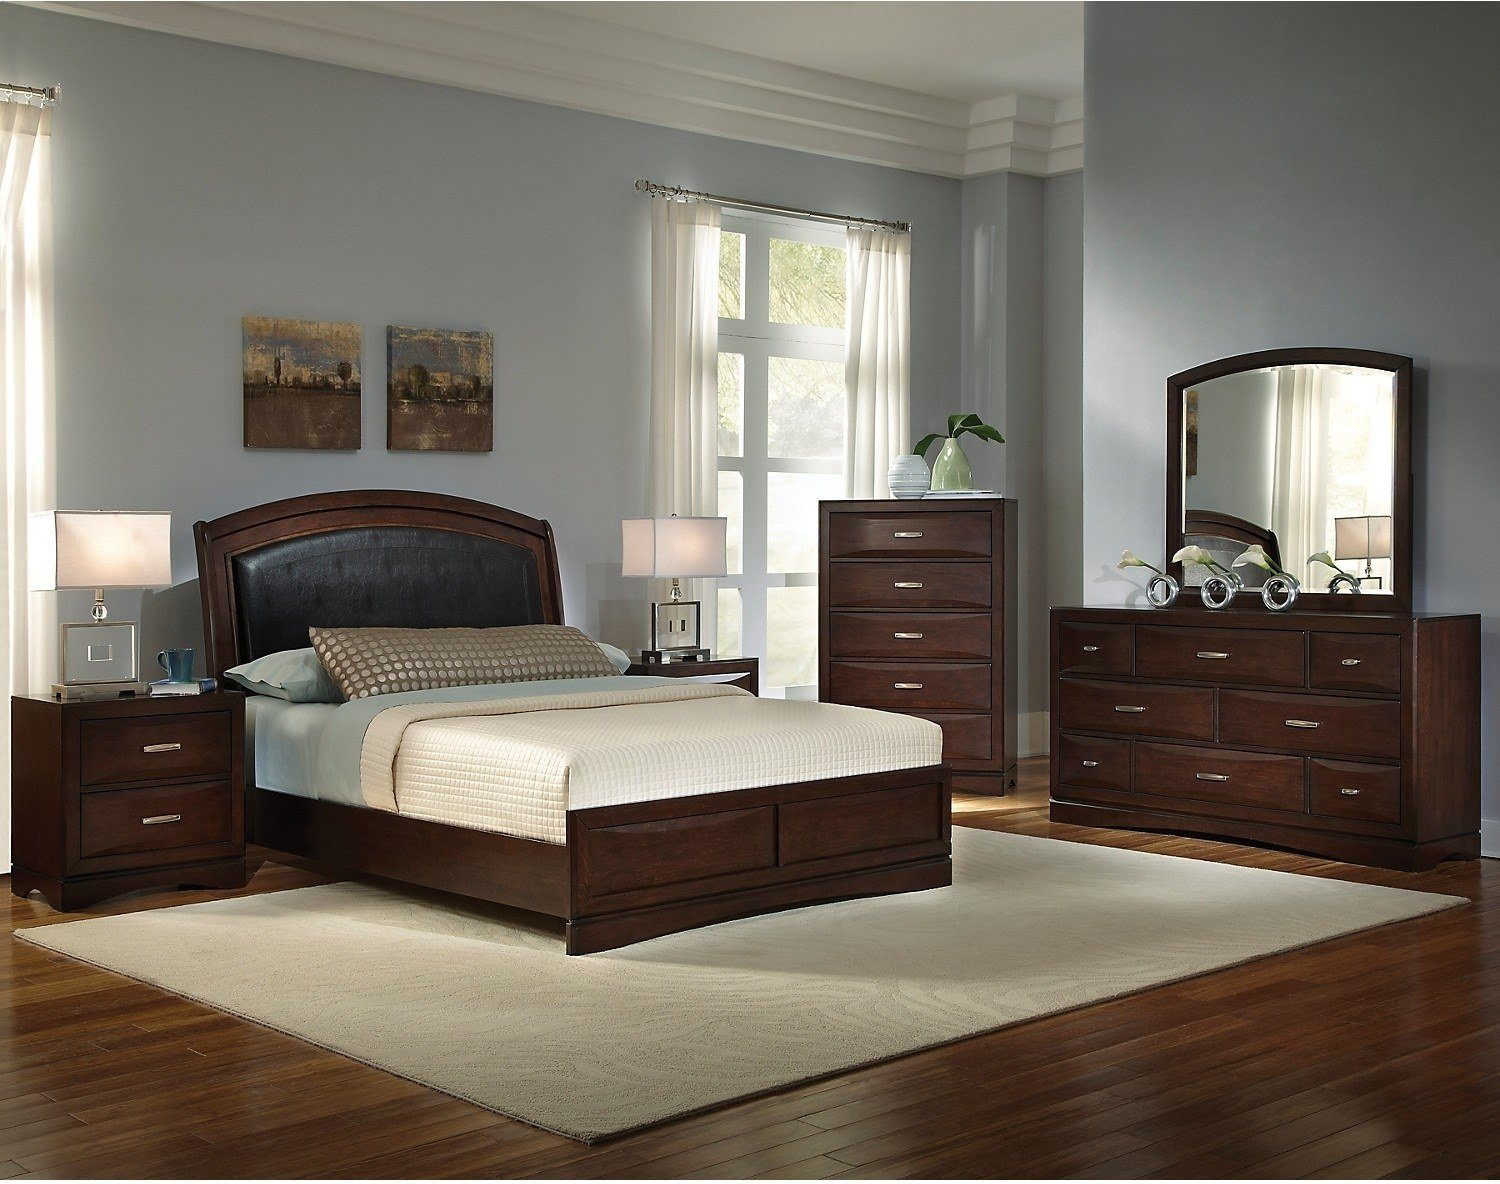 Best Beverly 8 Piece Queen Bedroom Set The Brick With Pictures